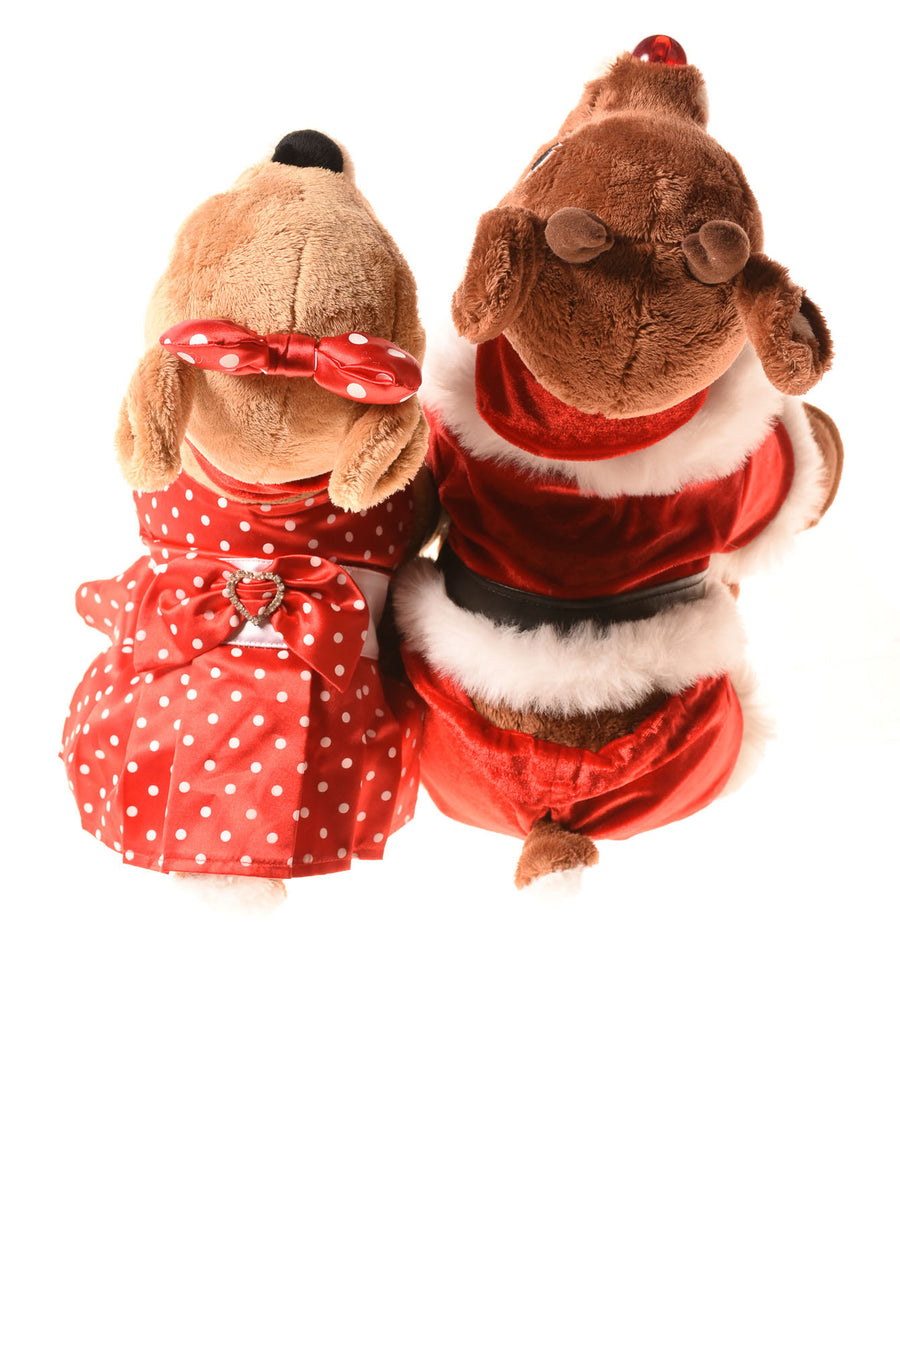 USED Build A Bear Workshop Rudolph The Reindeer N/A N/A